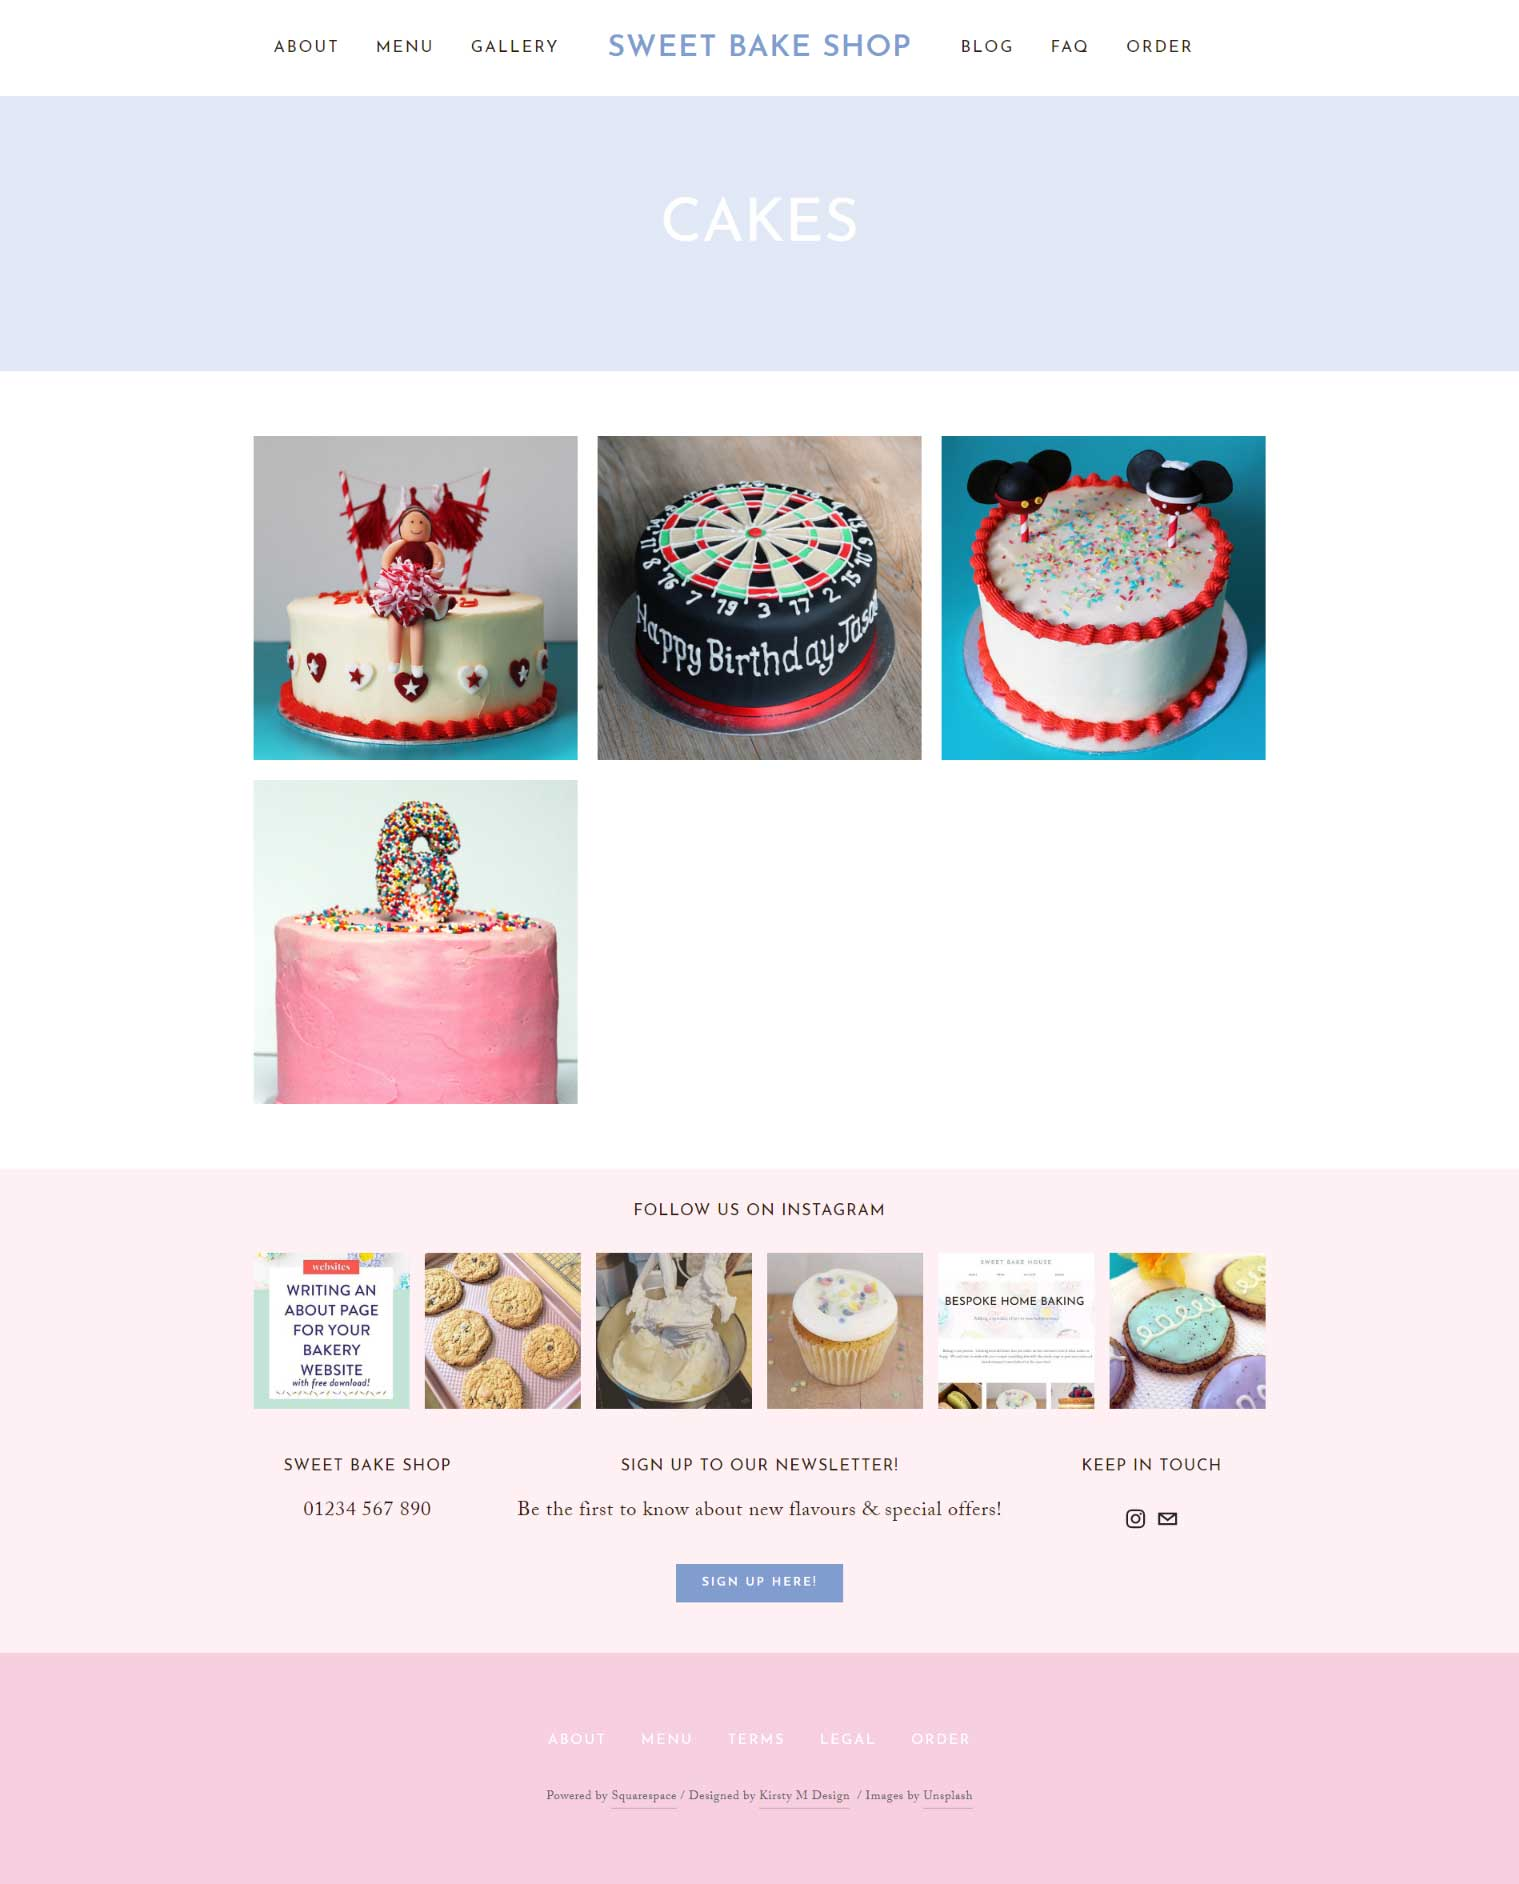 gallery-page.jpg